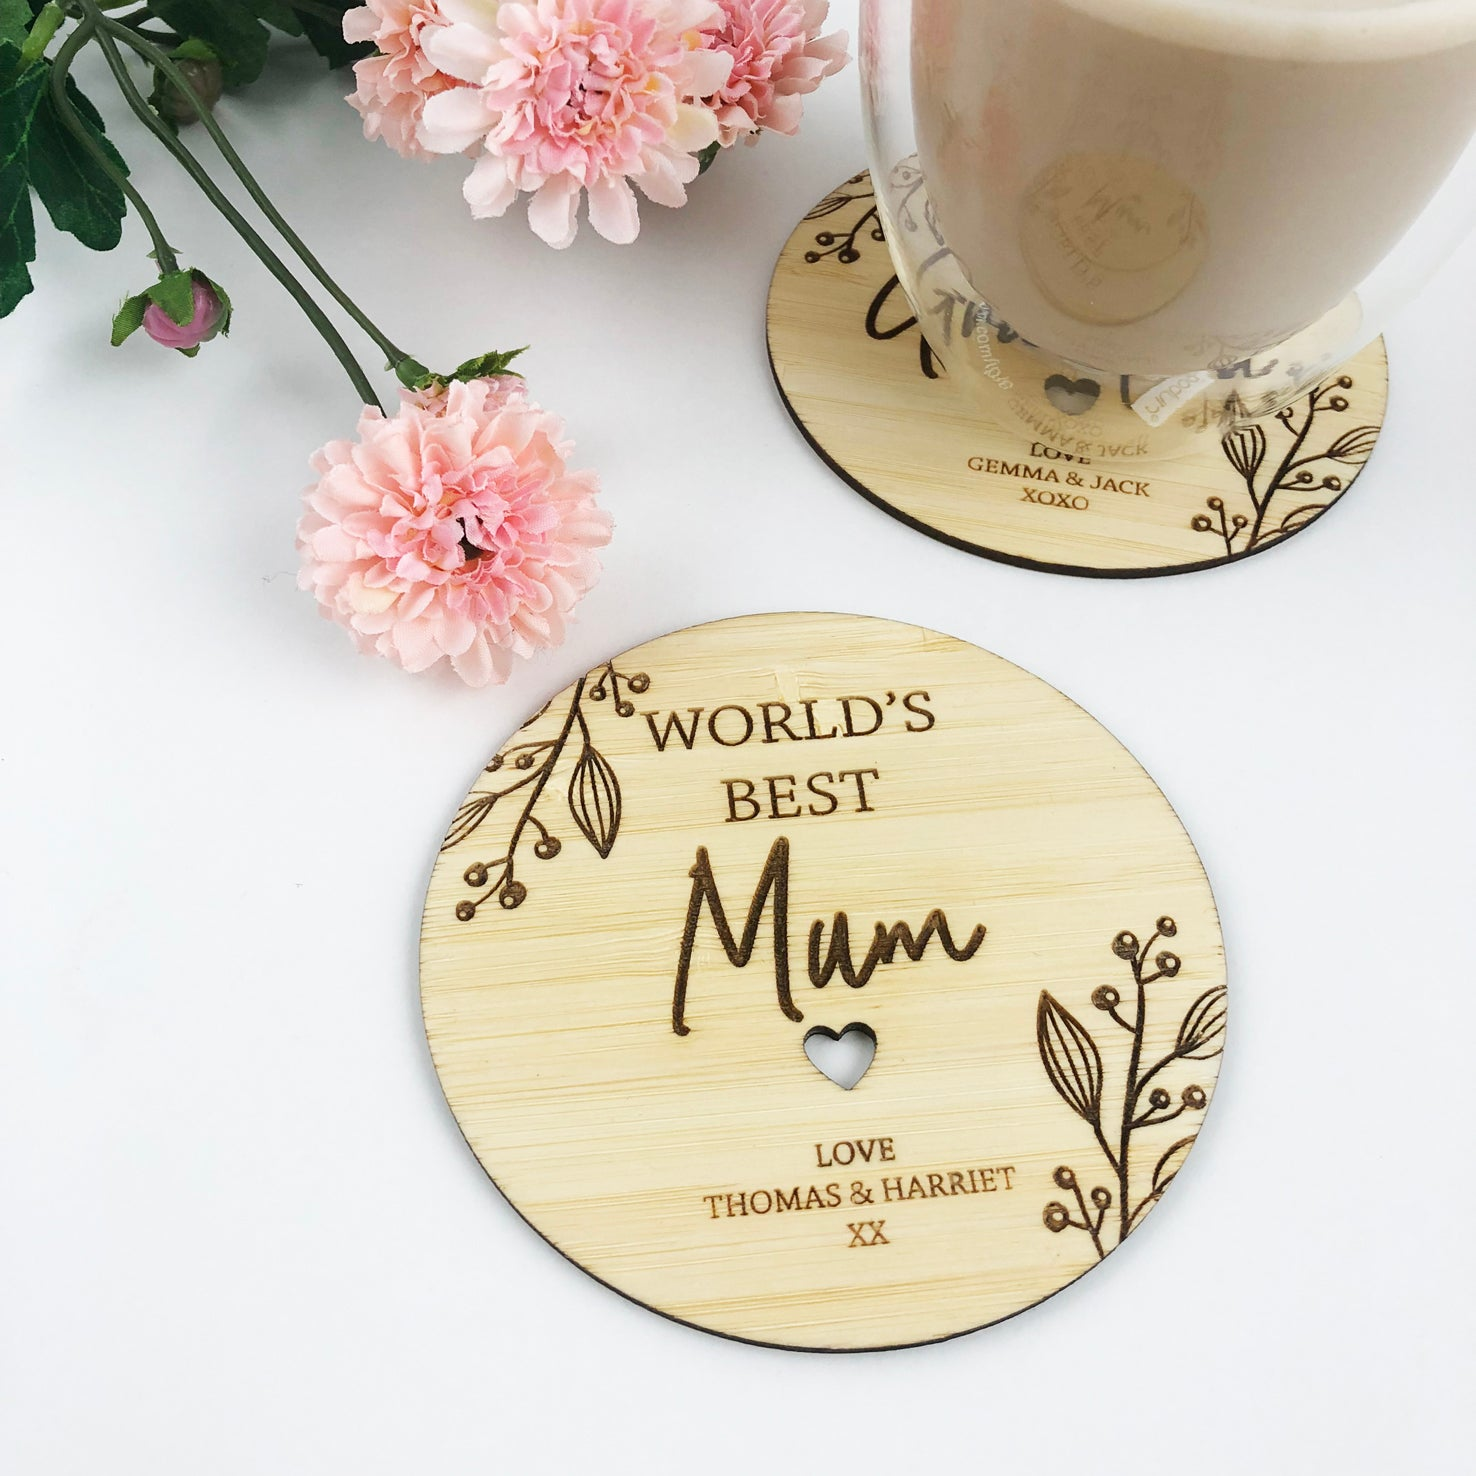 World's Best Flourish Etched Drink Coaster